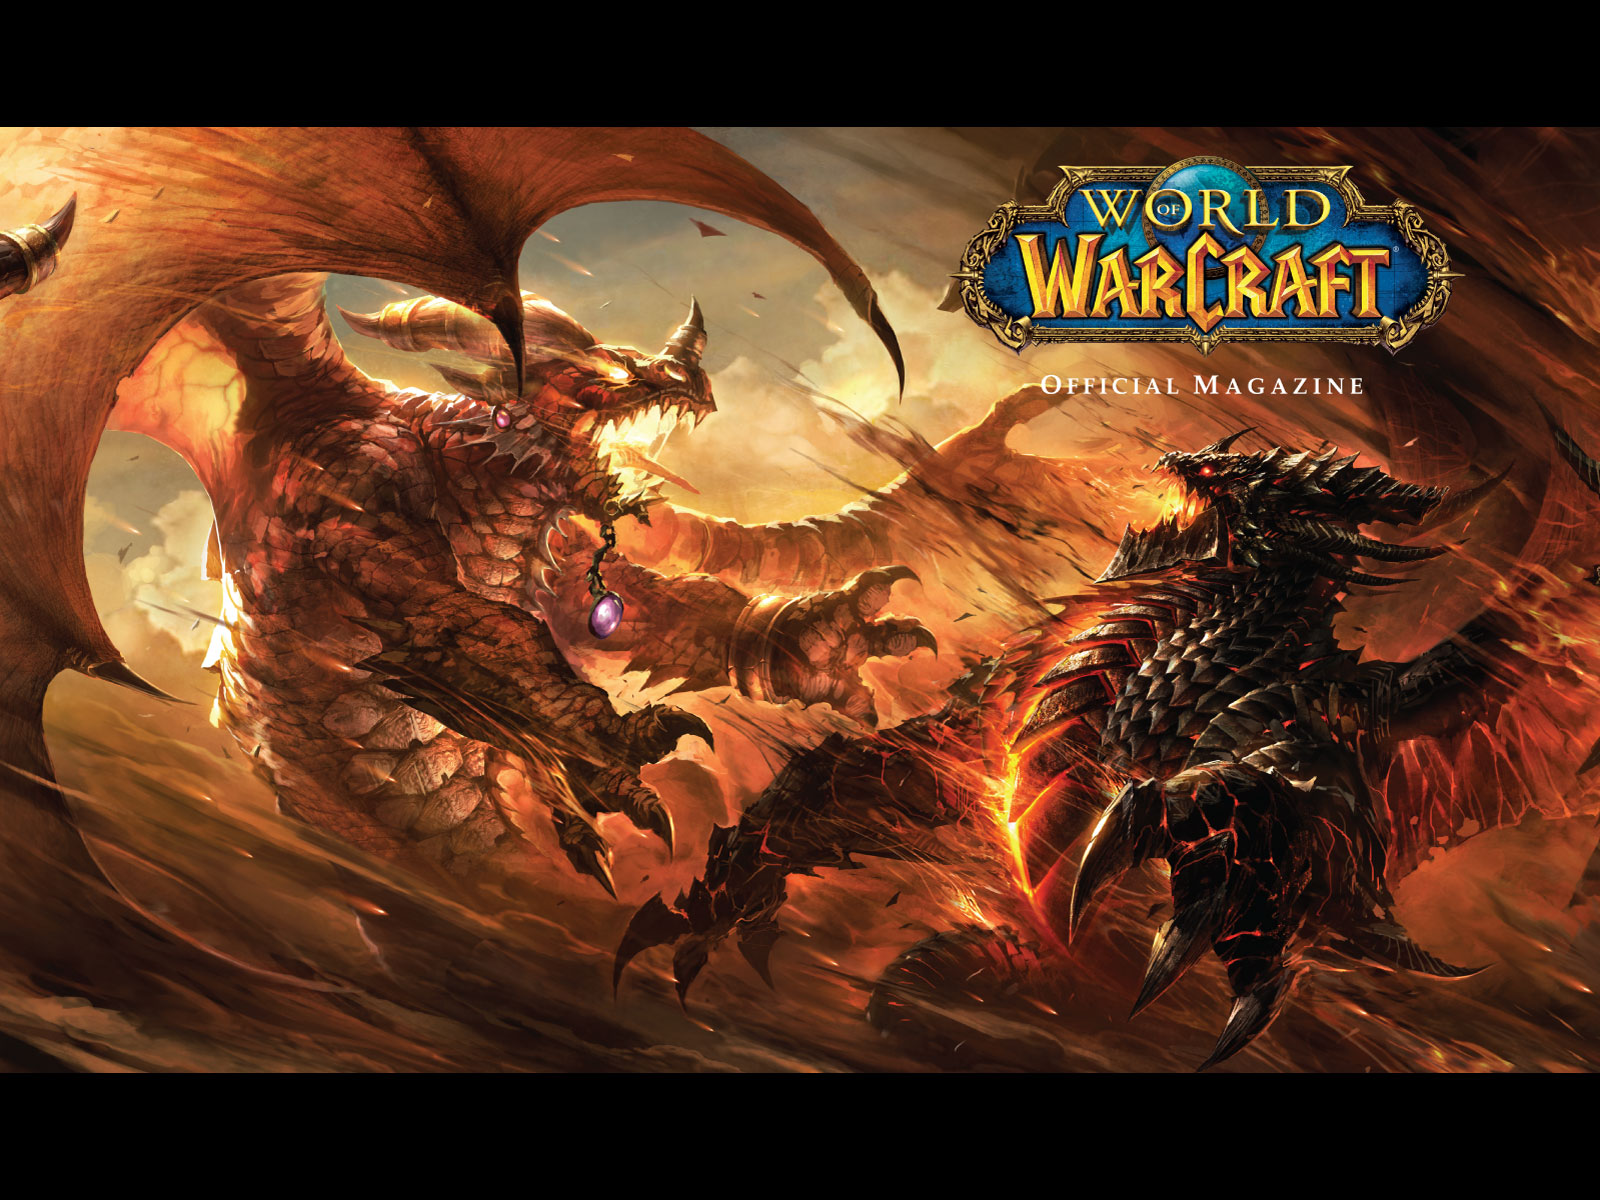 World of warcraft the magazine wowwiki your guide to - World of warcraft images ...